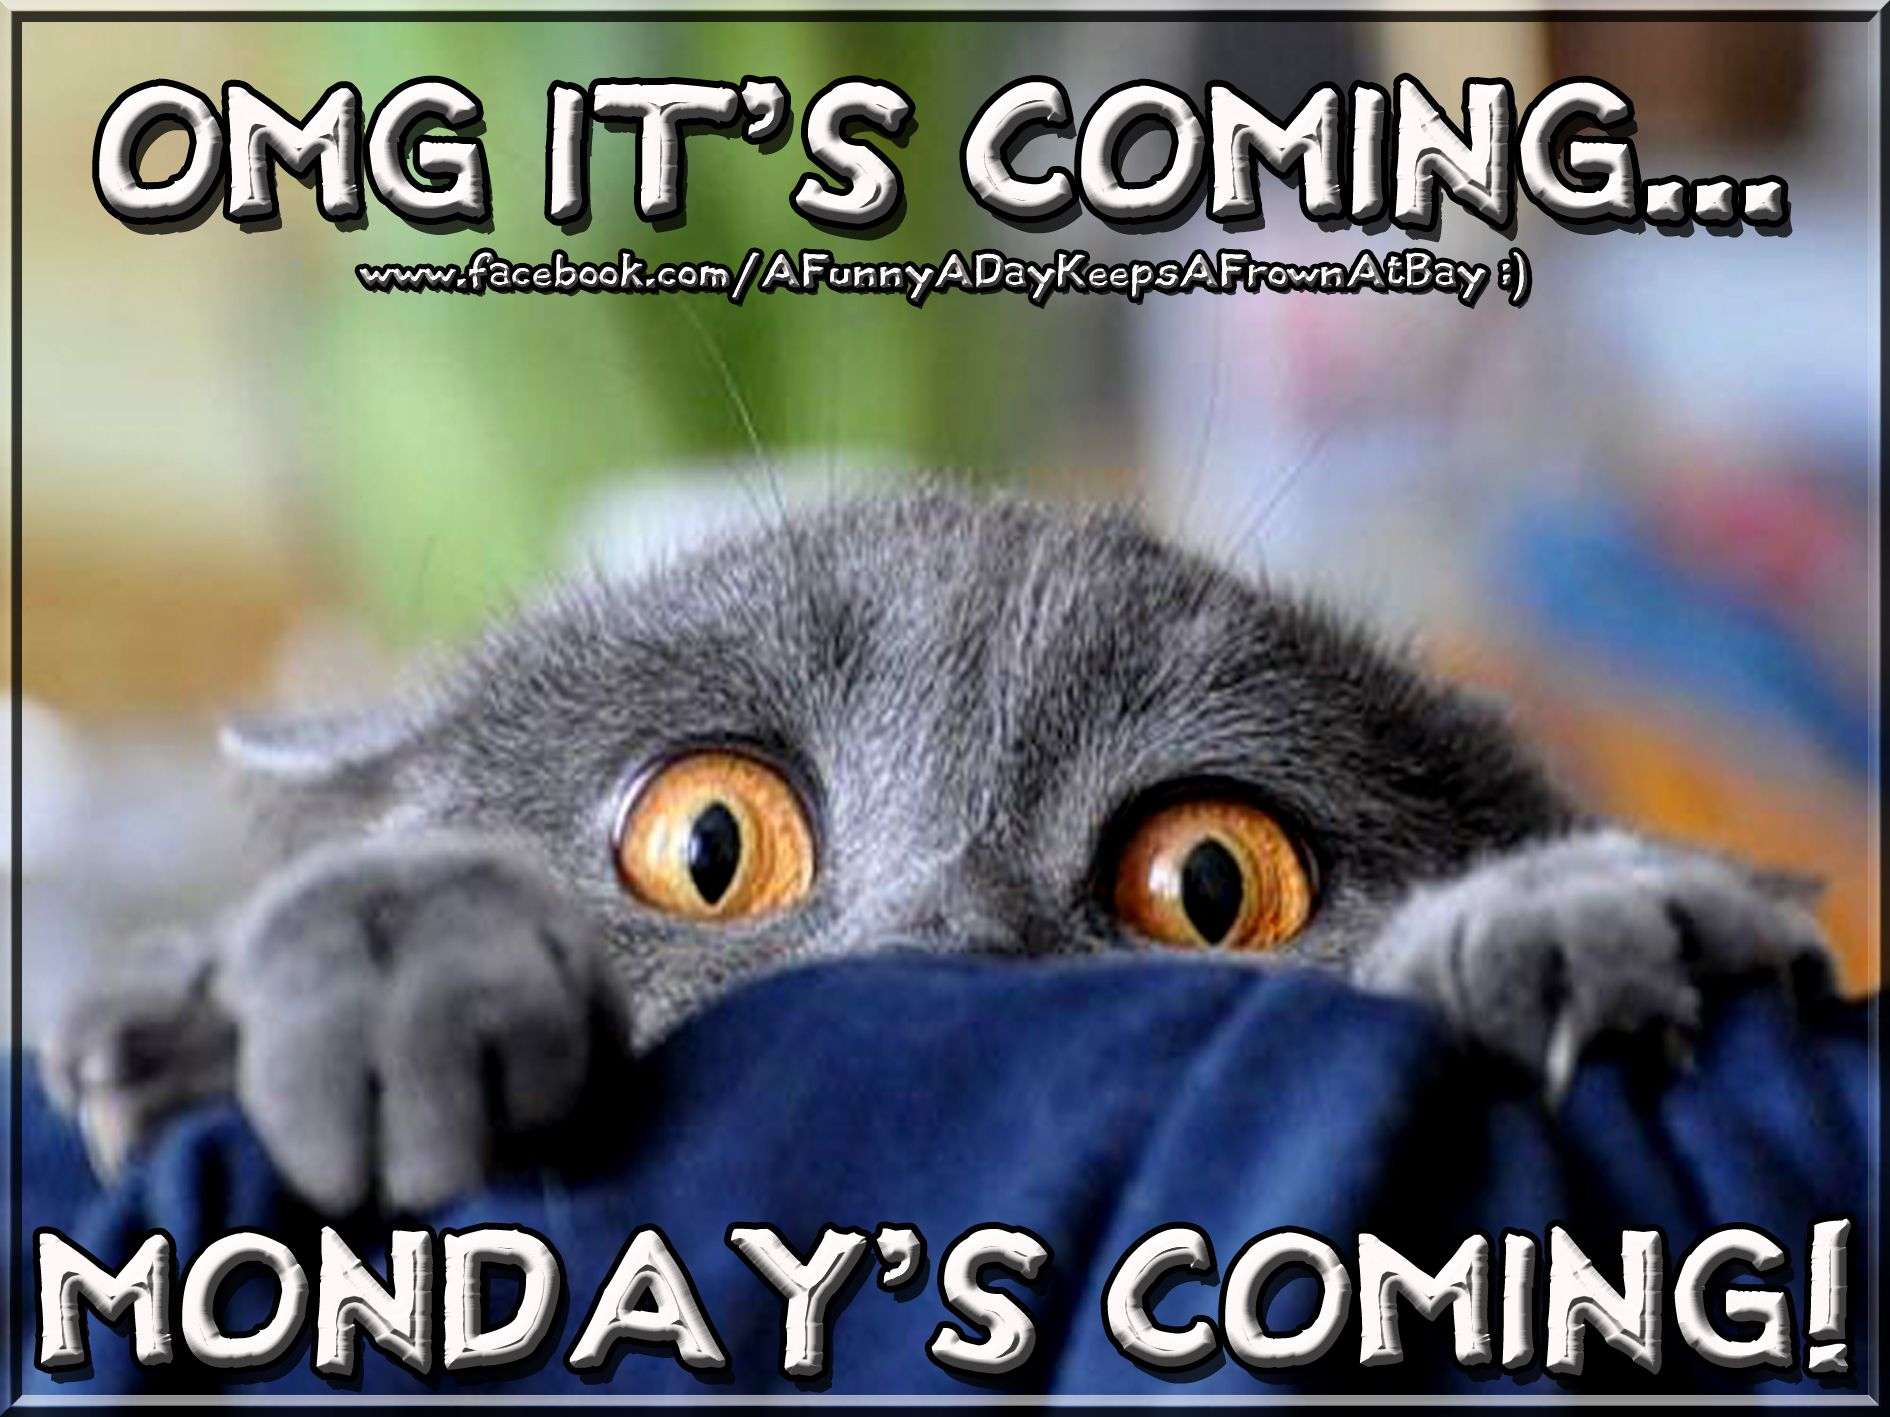 Mondays Coming Sunday Quotes Funny Happy Sunday Quotes Morning Quotes Funny